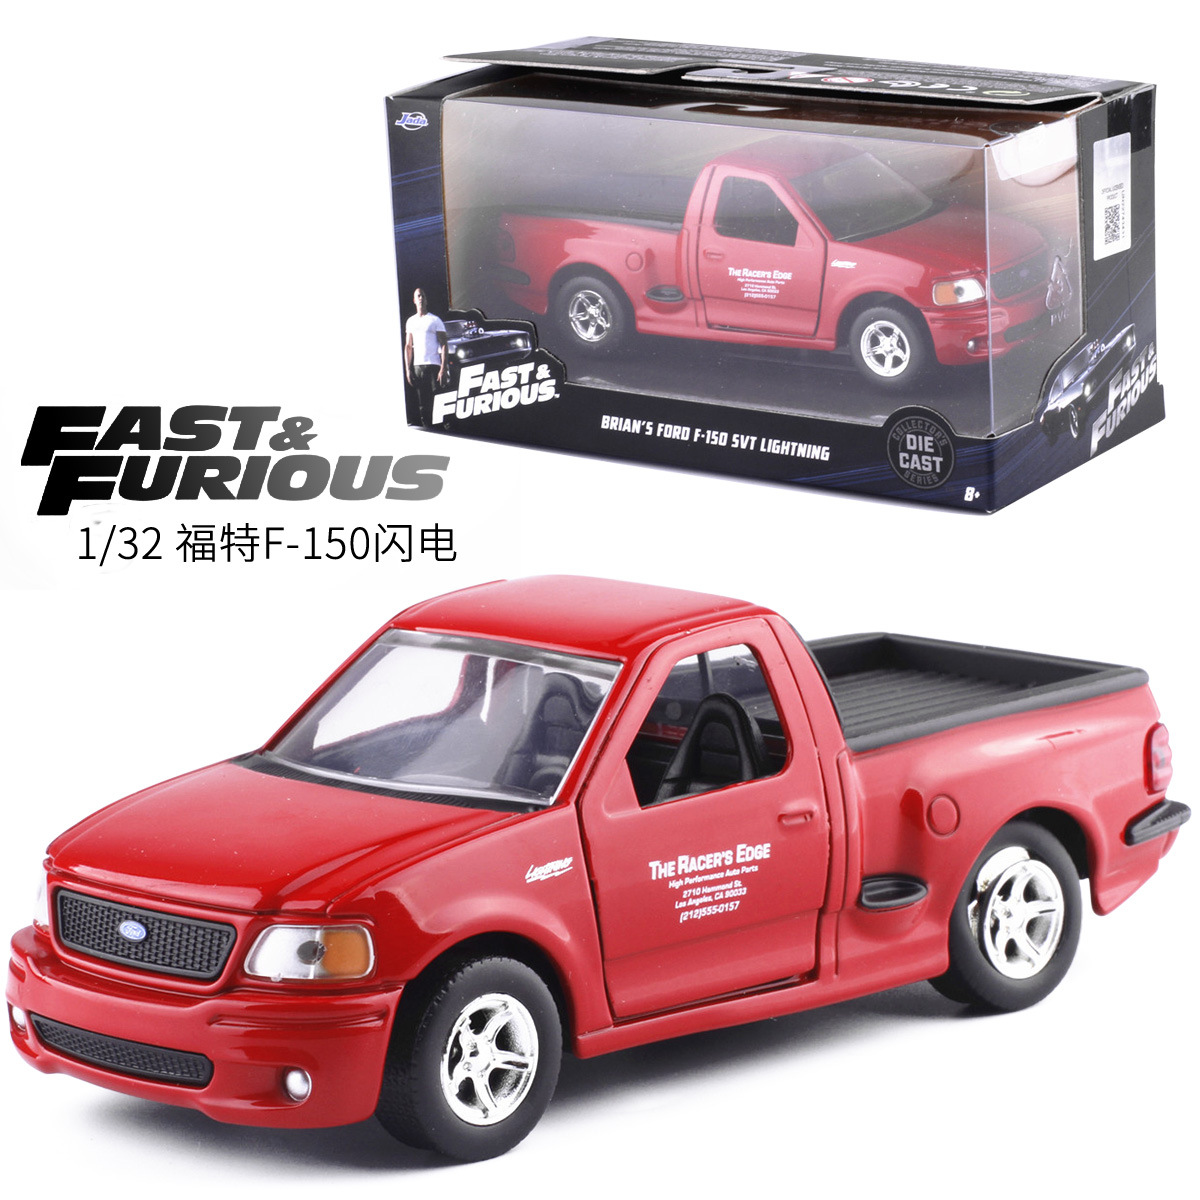 Jada1:32 Fast And Furious Alloy Car Ford F-150 SVT 1999 Metal Diecast Classical Truck Model Toy Collection Toy For Children Gift